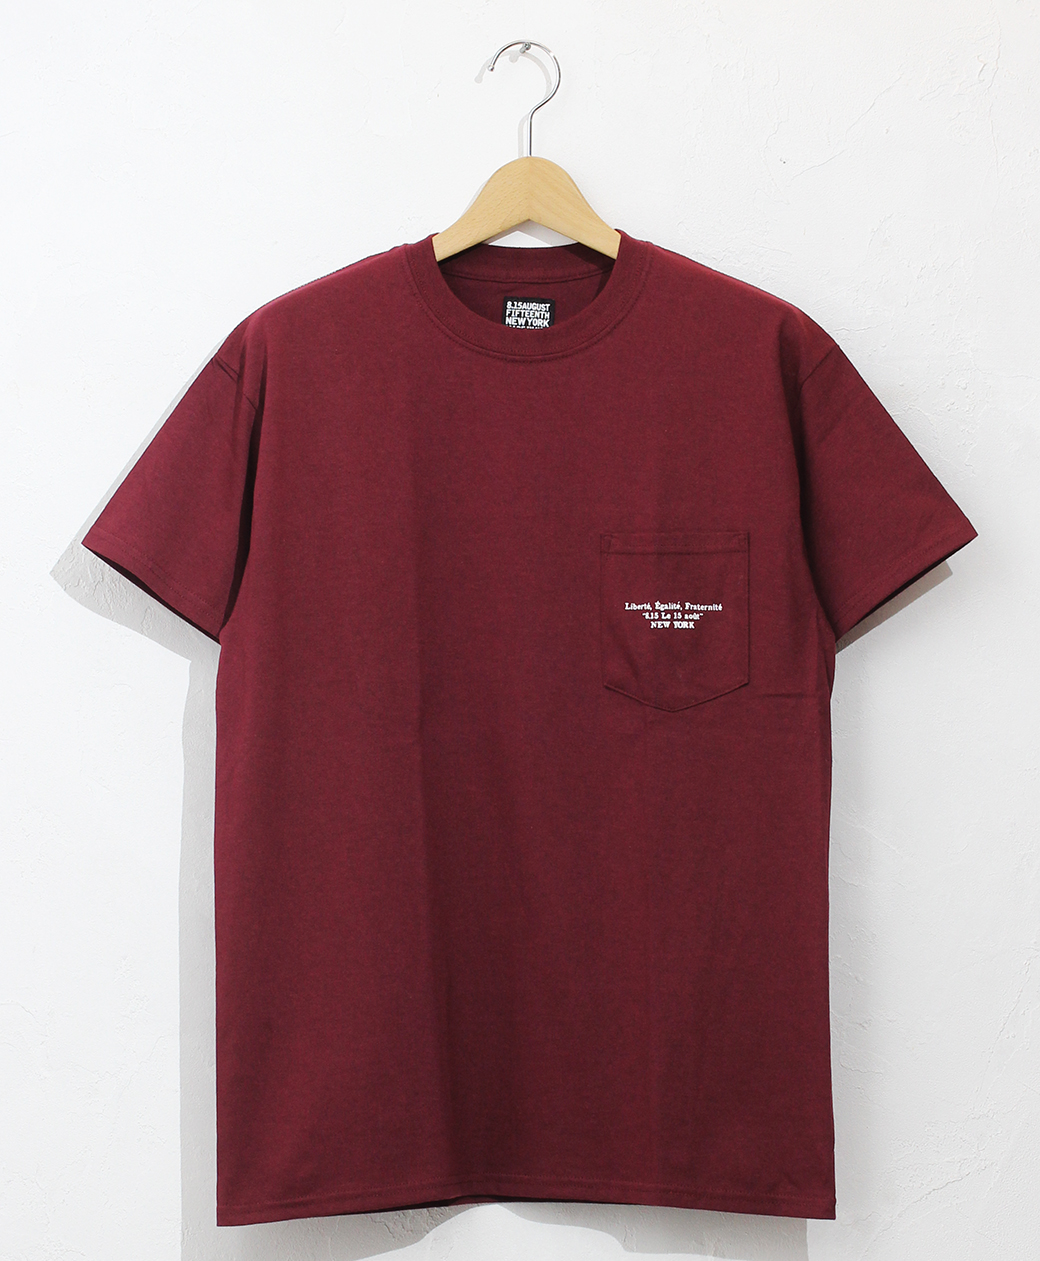 8.15 August Fifteenth LOGO POCKET TEE FRENCH LOGO(BURGUNDY)